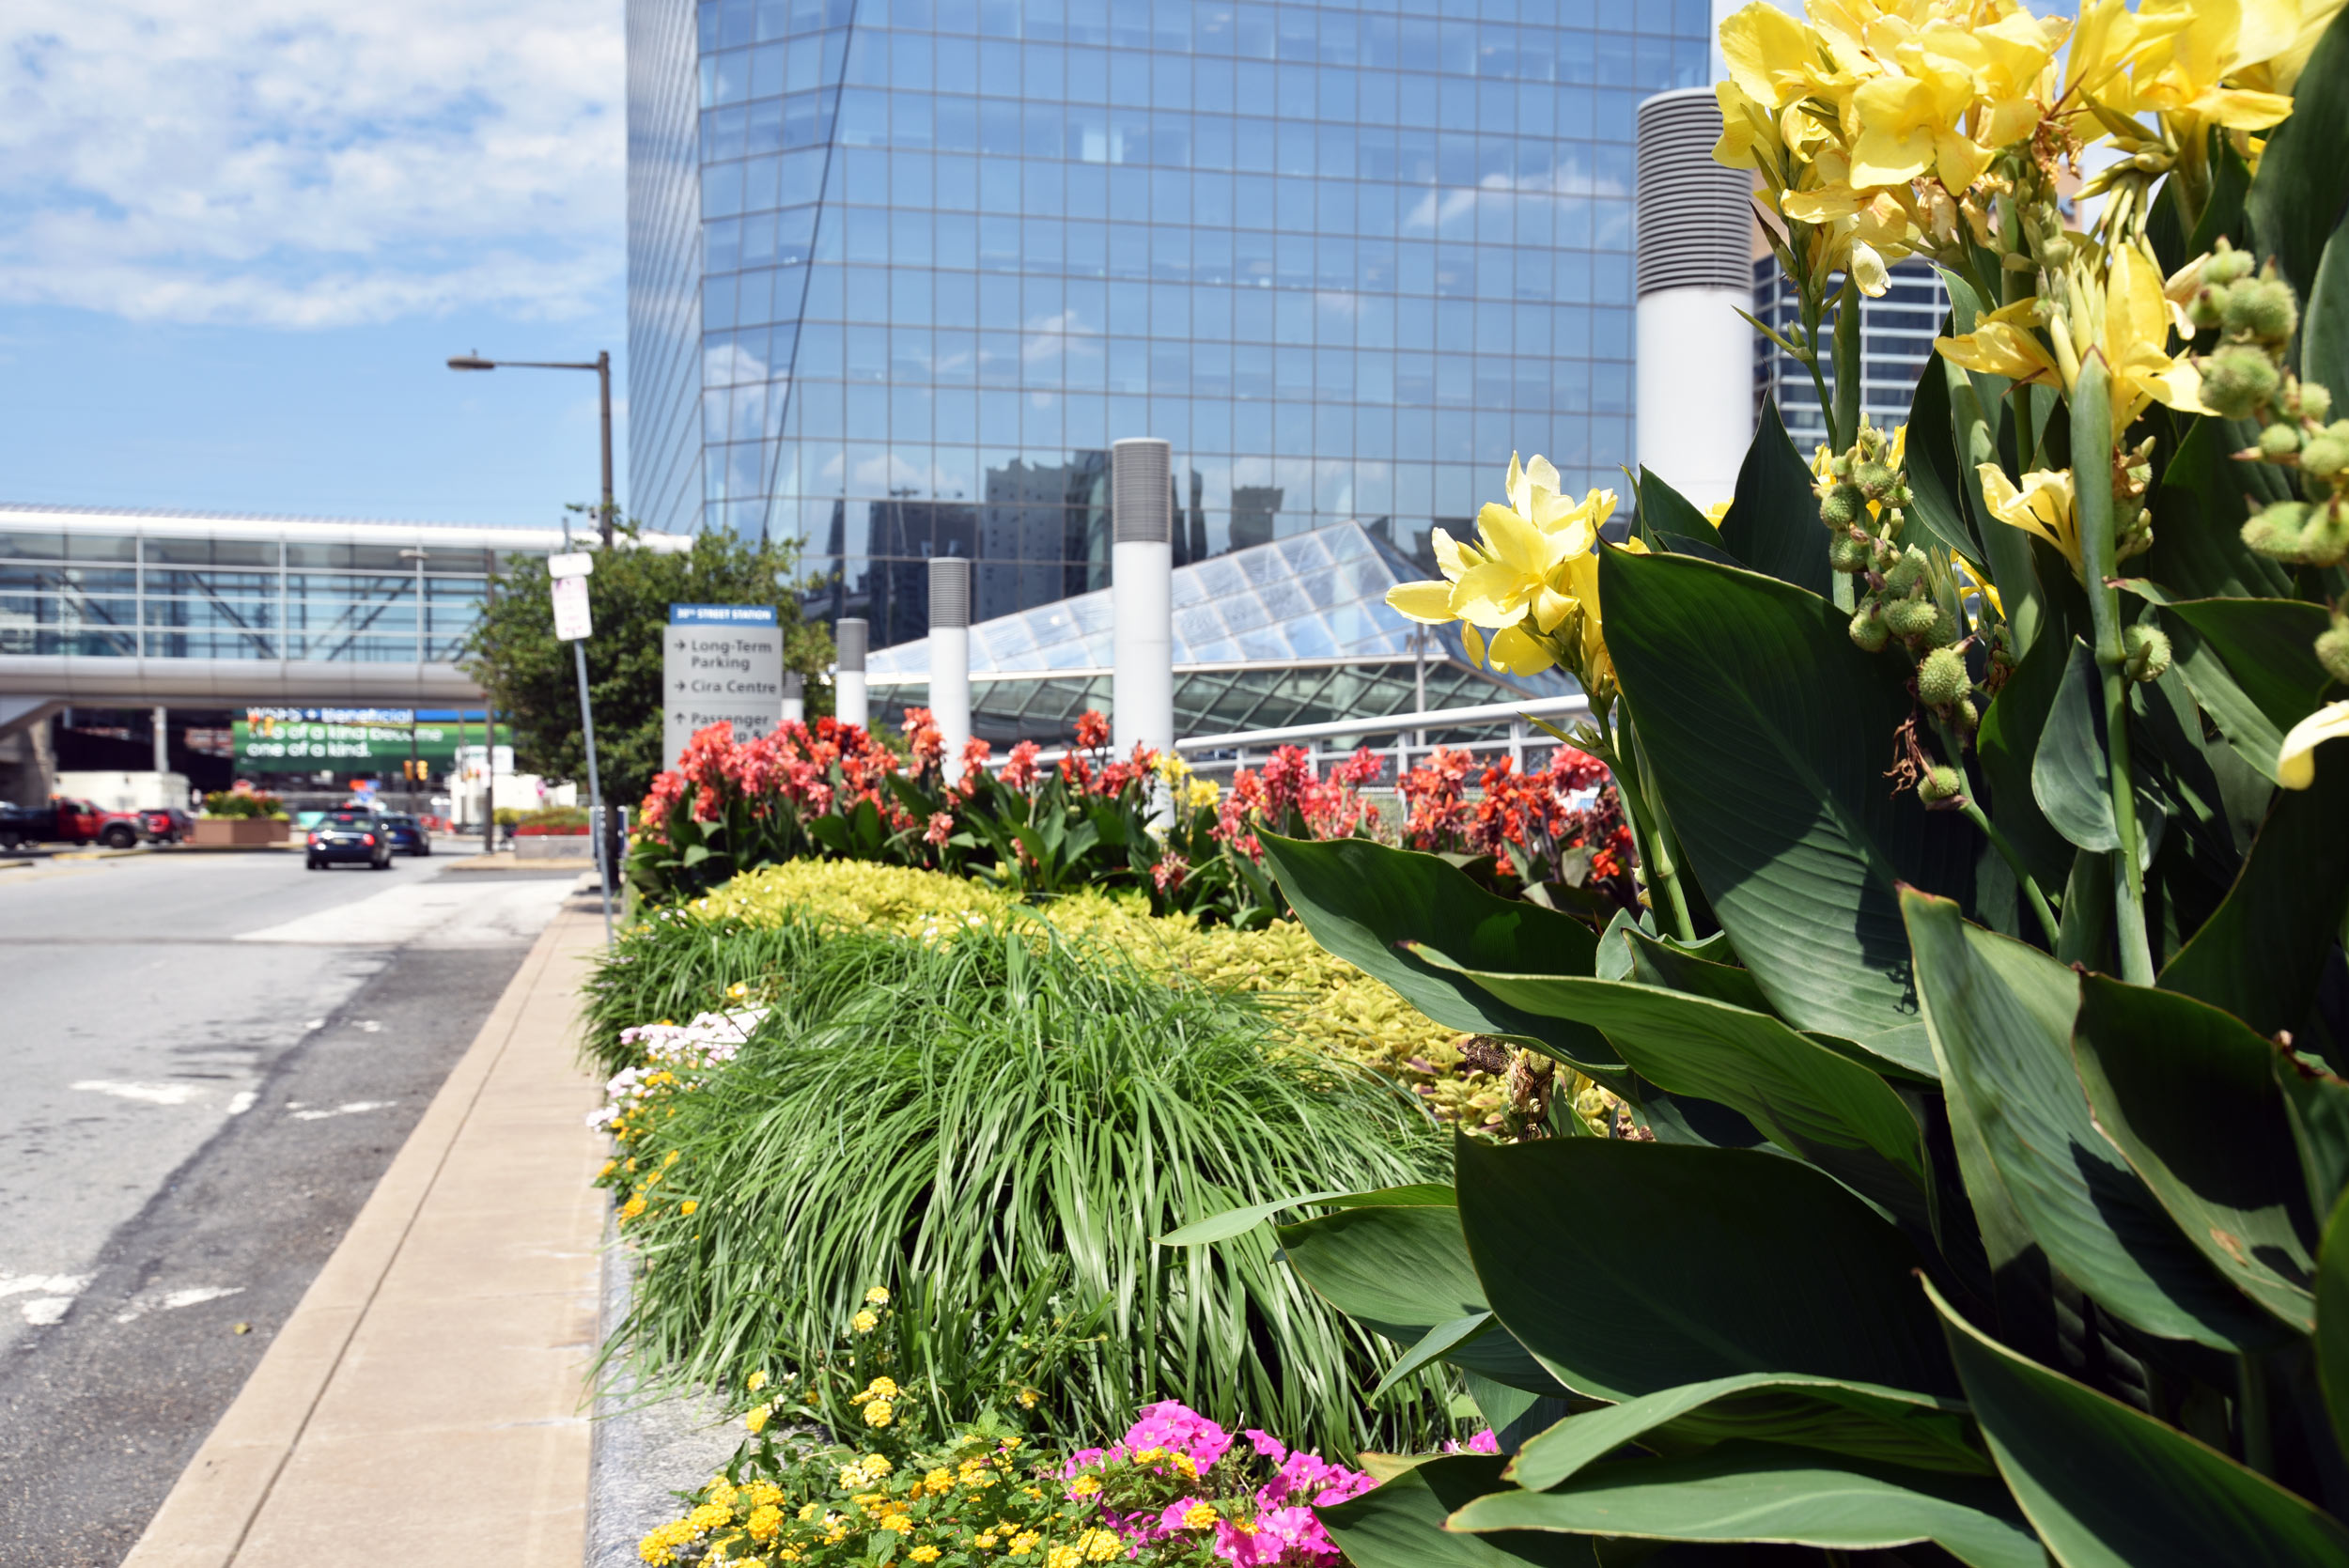 GCW performs regular landscape maintenance at the Cira Centre and installs new annual planting schemes each spring and fall for seasonal appeal.